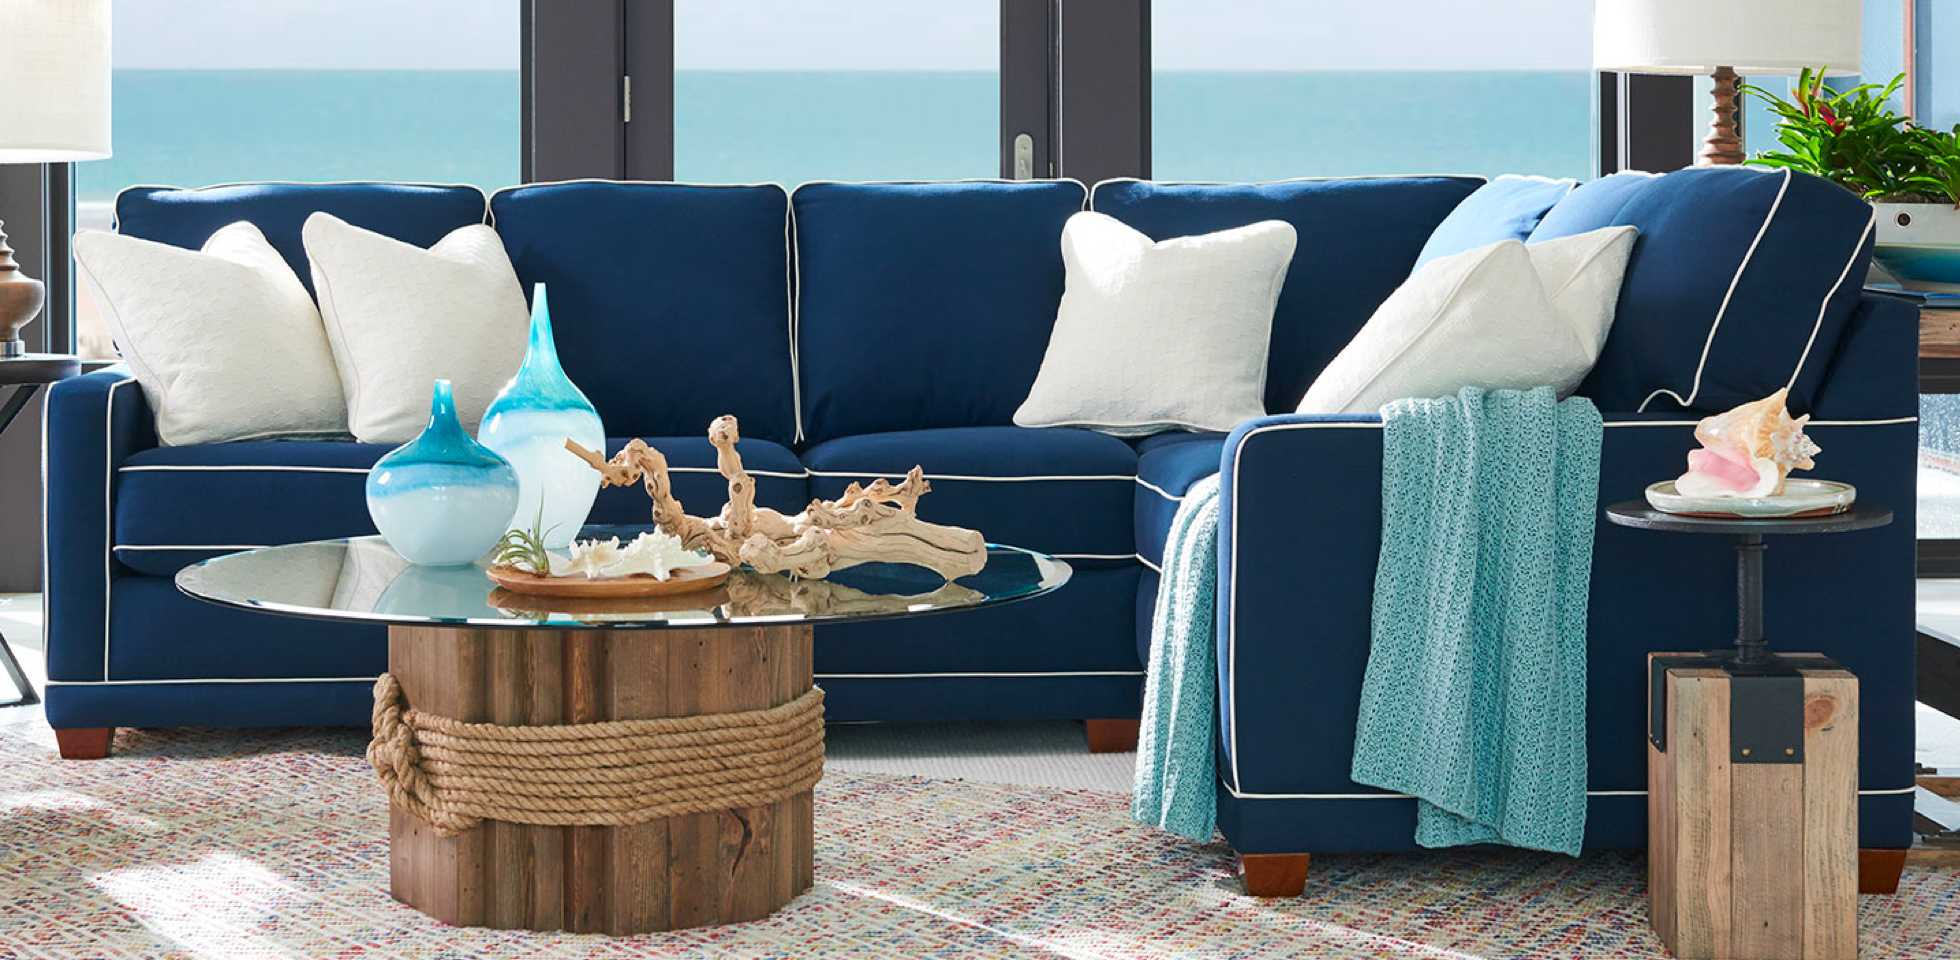 Room scene with Kennedy Sectional and beach-inspired colors